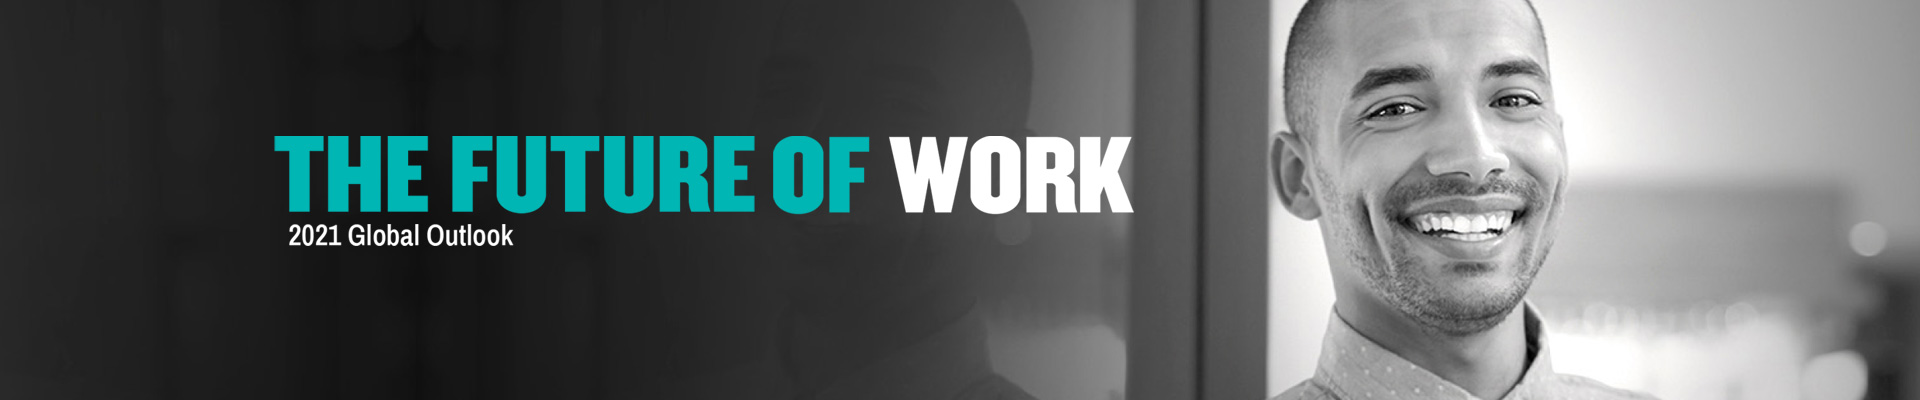 future-of-work-homepage-banner3